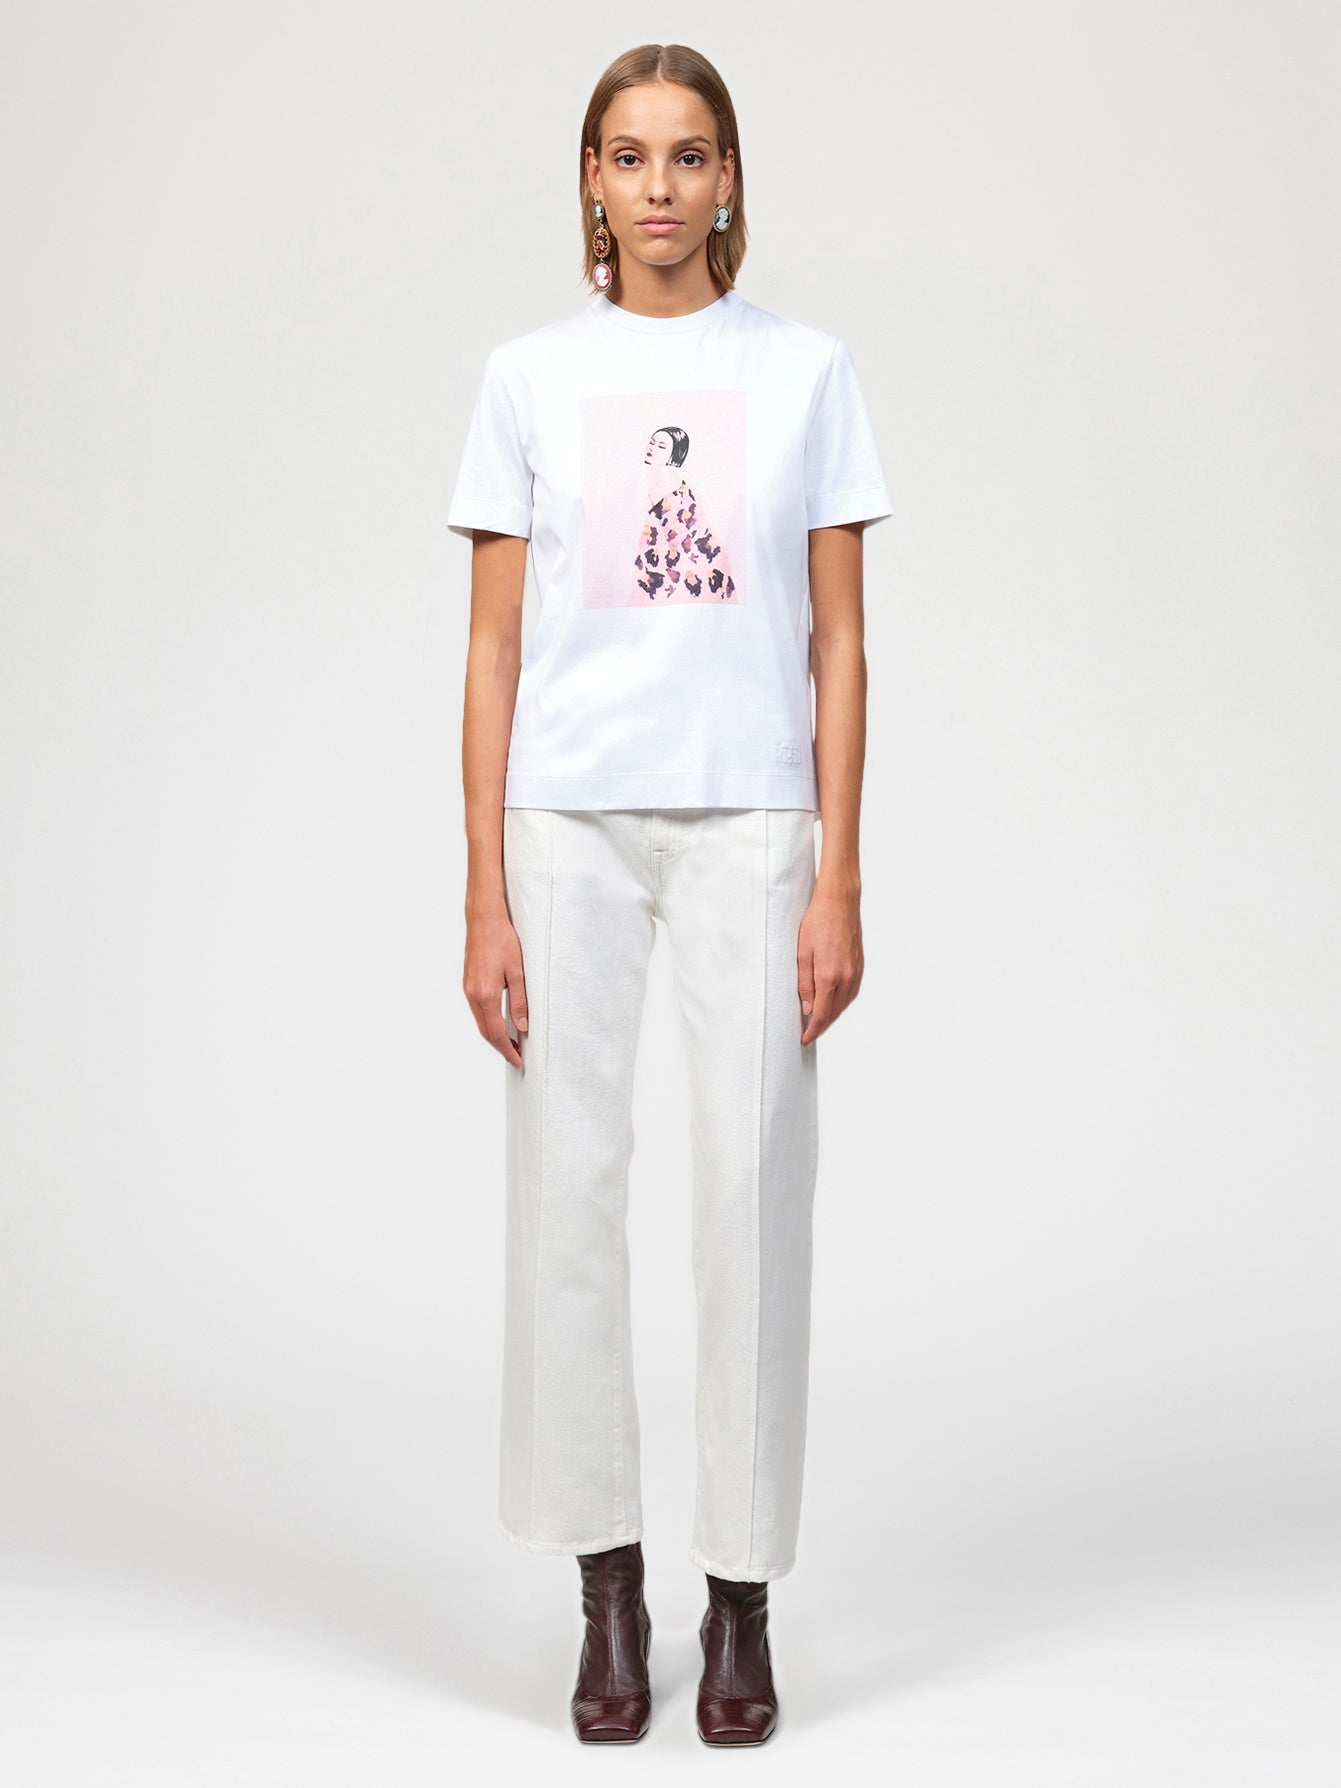 Painted Lady Print White T-Shirt